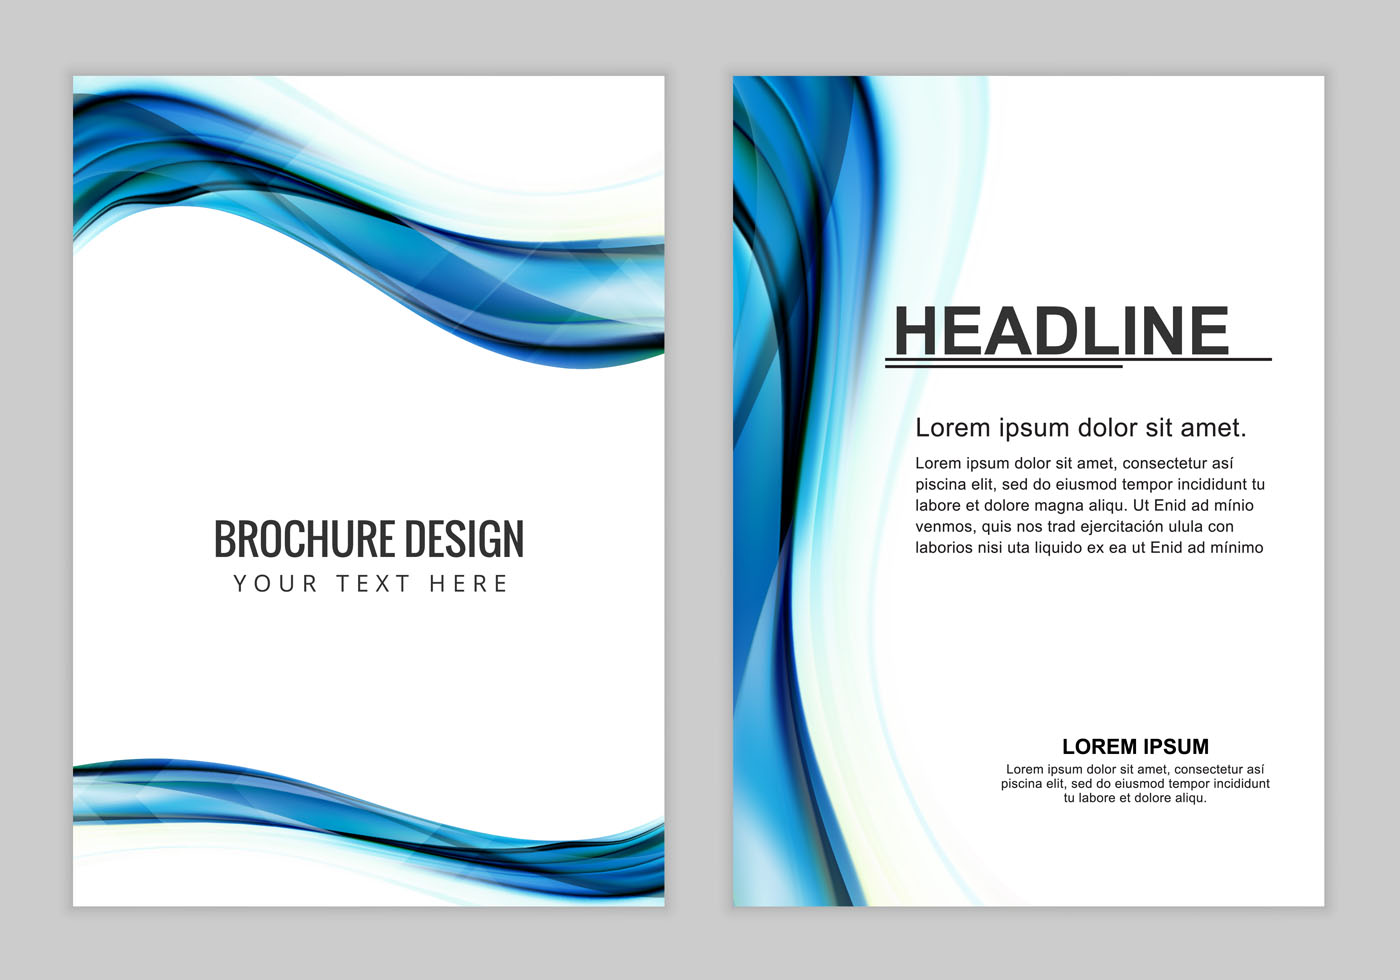 Free vector brochure background download free vector art for Background for brochure design